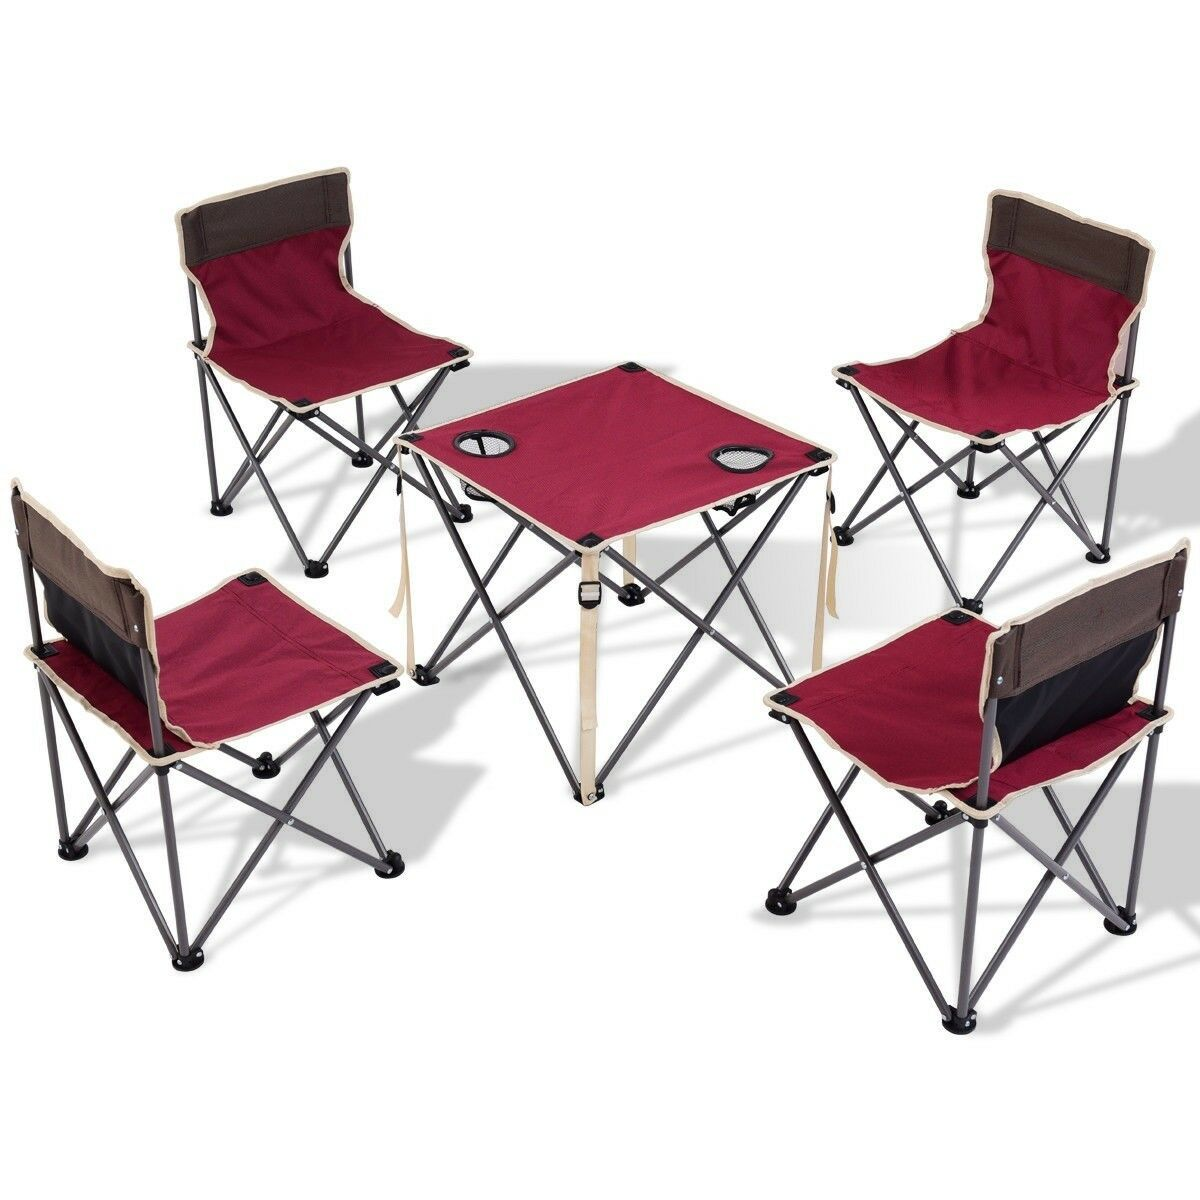 5Pcs Outdoor Camping Hiking Picnic Folding Table Chairs Set with Carrying Bag US